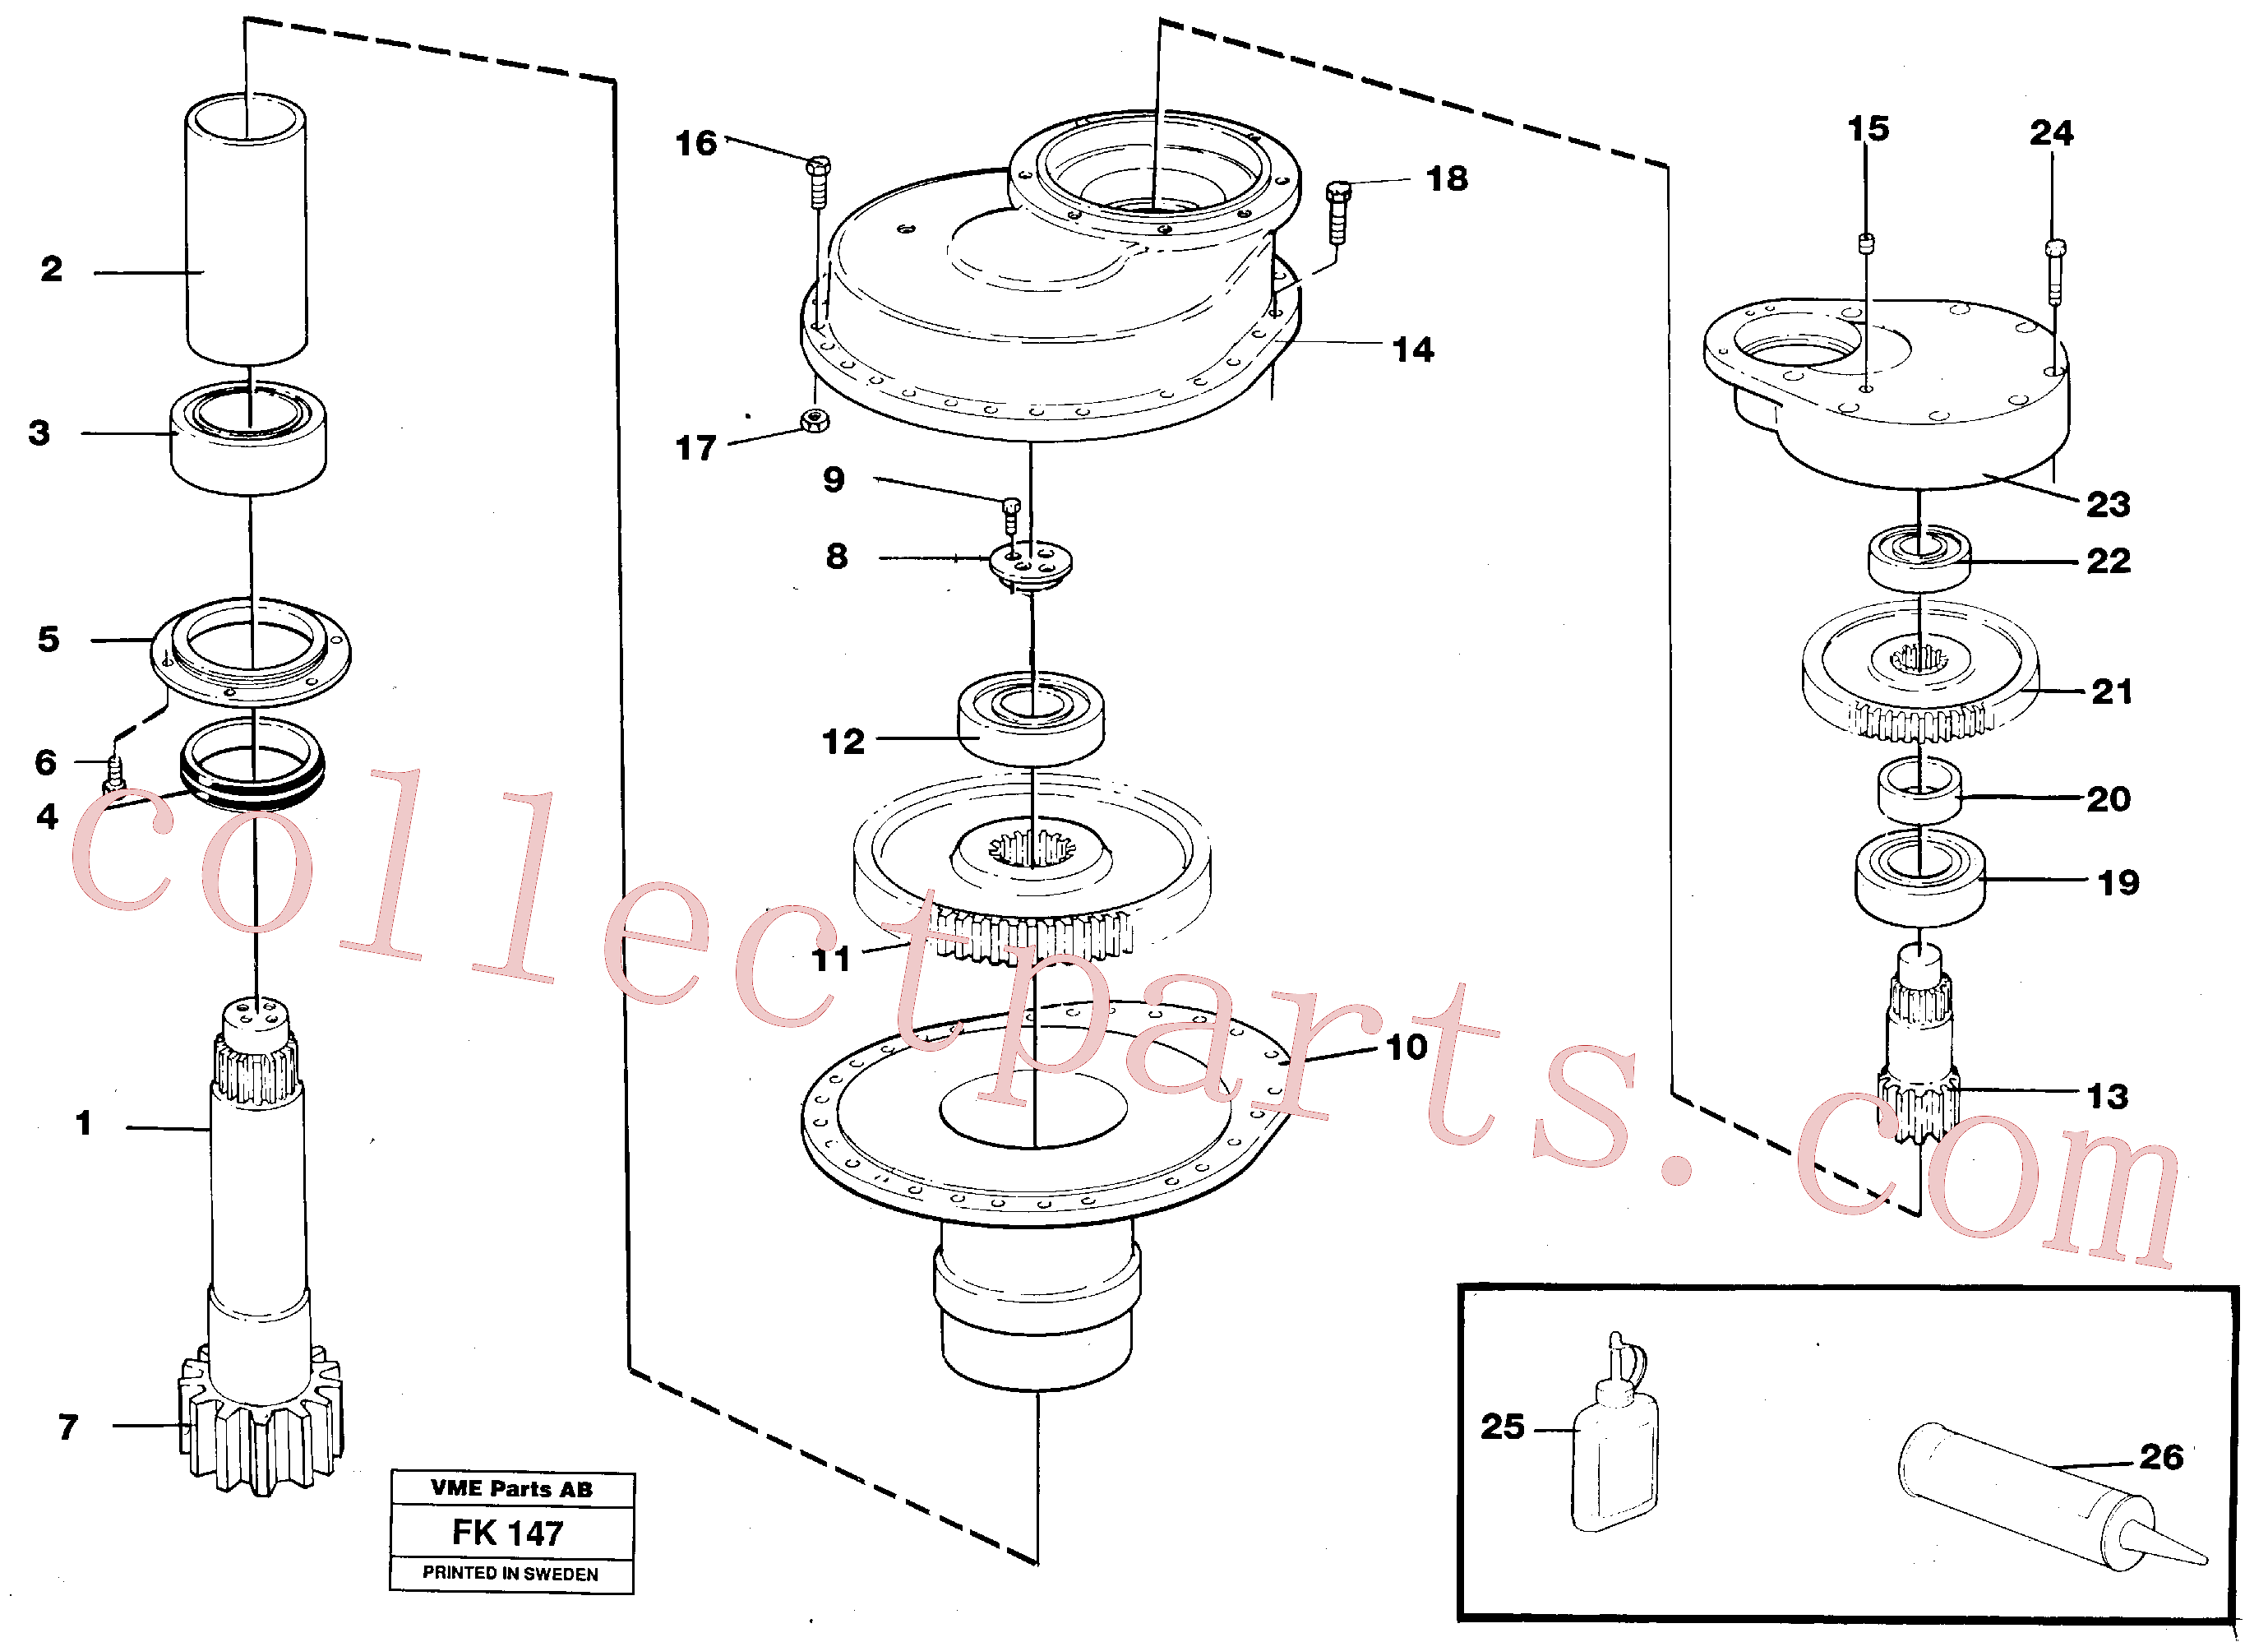 VOE973244 for Volvo Swing gearbox(FK147 assembly)